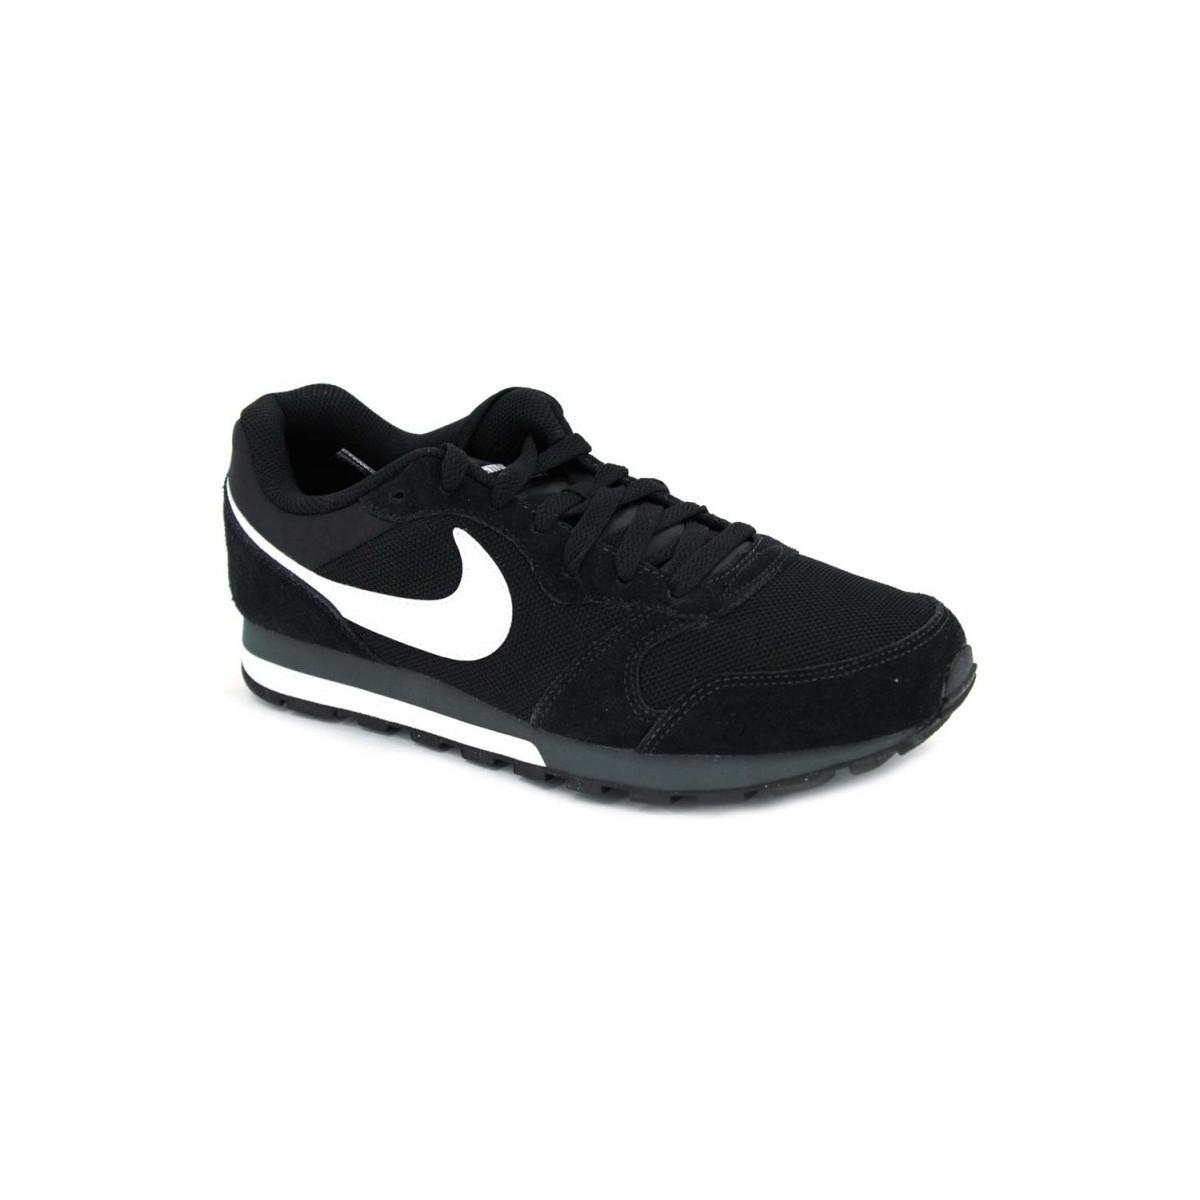 c5455da5235 Nike. Md Runner 2 749794 Men s Trainers Men s Shoes (trainers) In Black